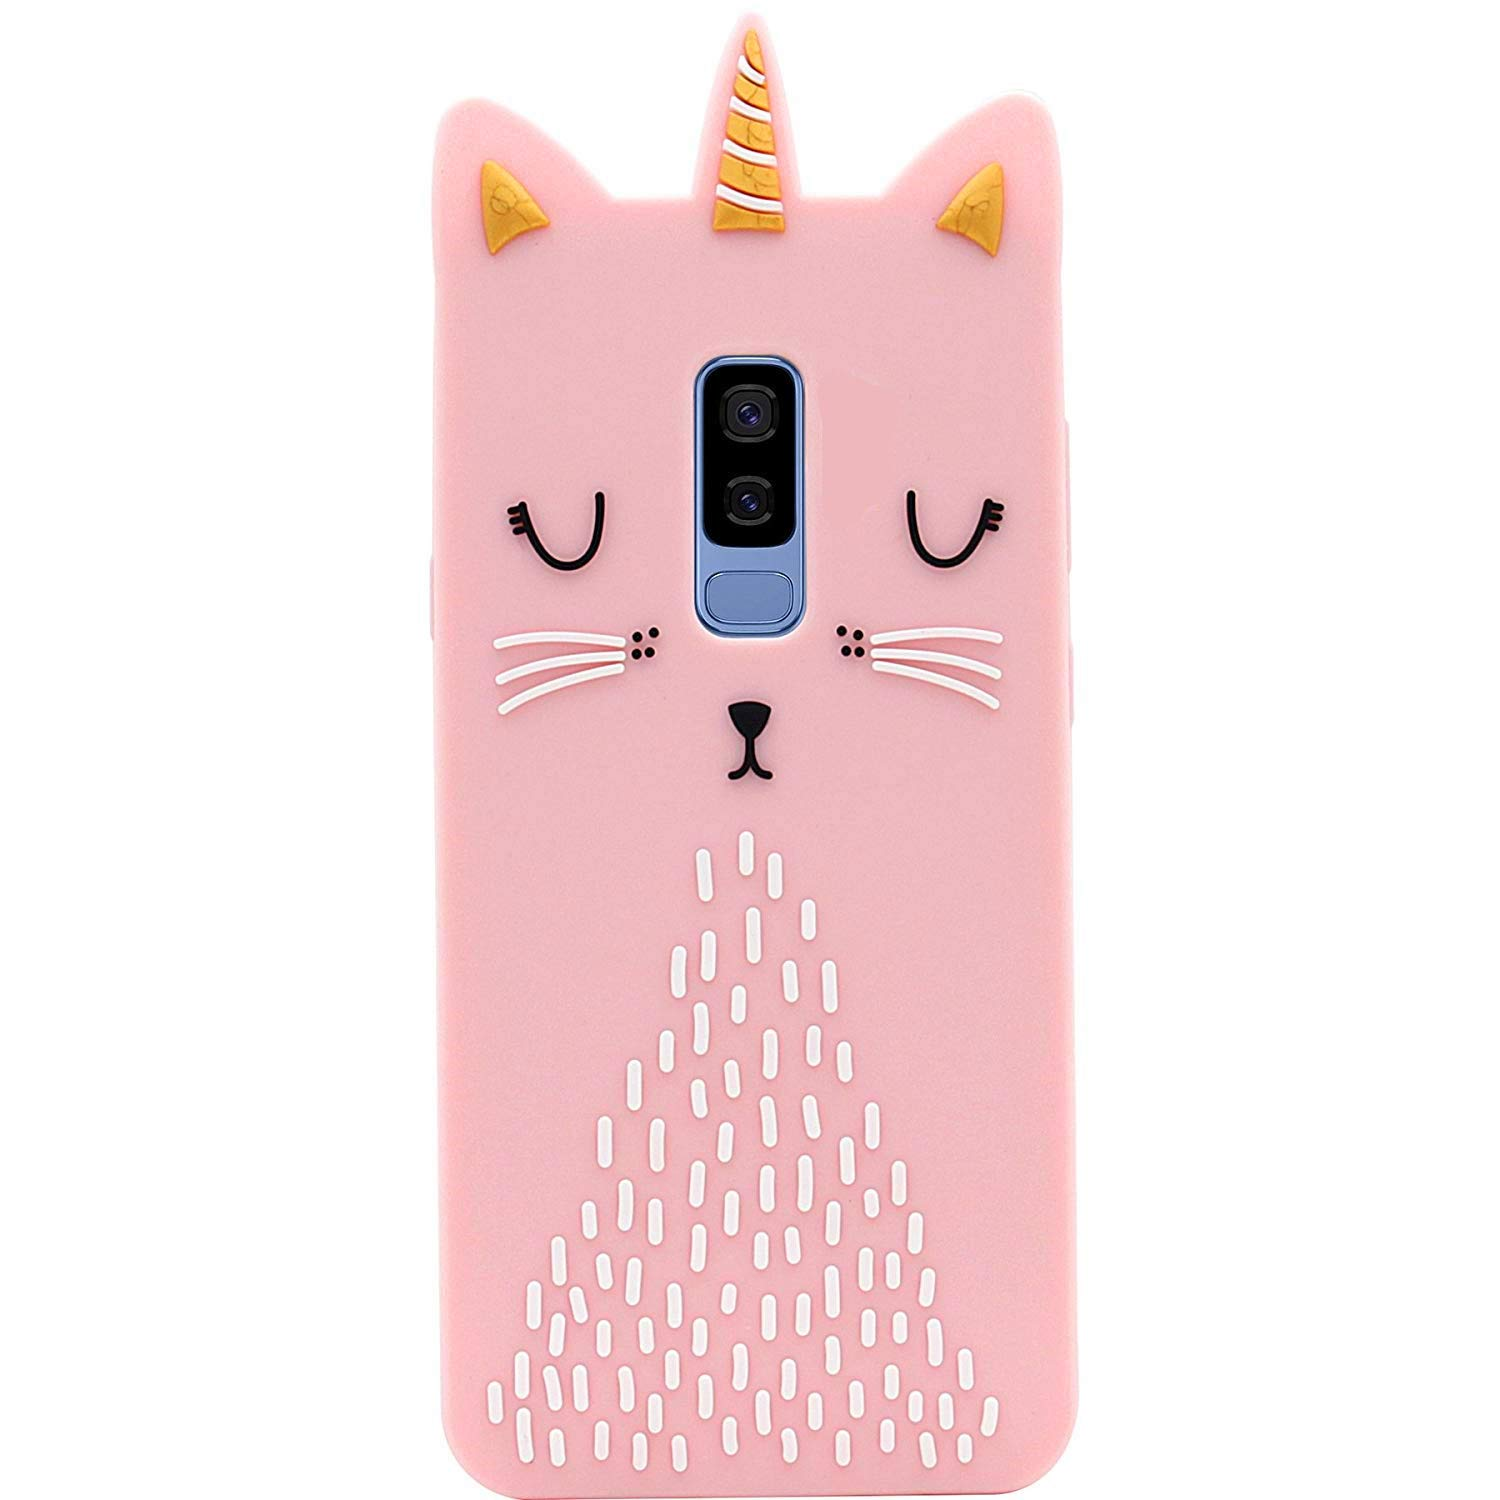 Cat Unicorn Case for LG K20 V,LG K20 Plus,LG Harmony Silicone 3D Cartoon Design Animal Pink Cover,Kids Girls Teens Cool Cute Cases,Kawaii Soft Character Funny Protector for LG K10 2017